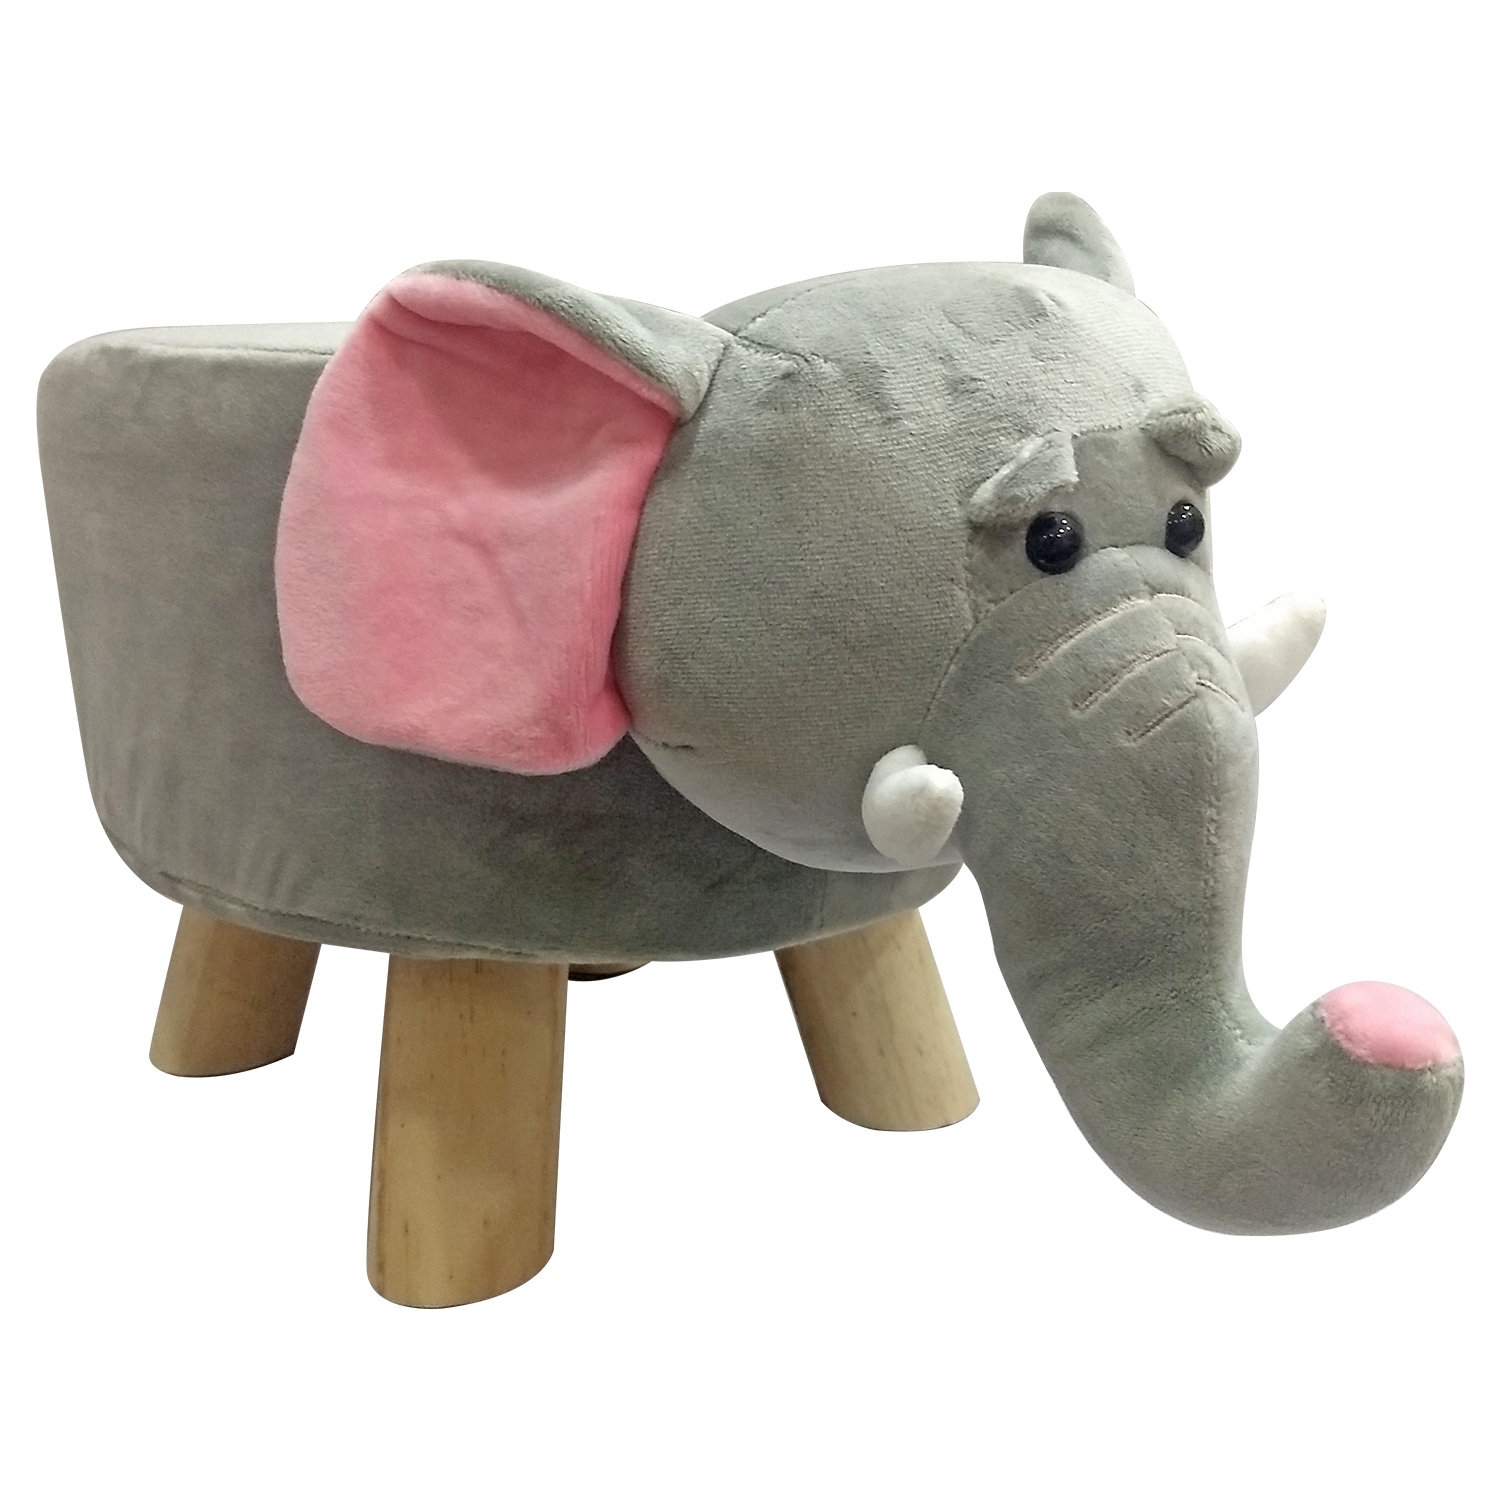 Swell Wooden Animal Stool For Kids Elephant Small Oval With Gmtry Best Dining Table And Chair Ideas Images Gmtryco